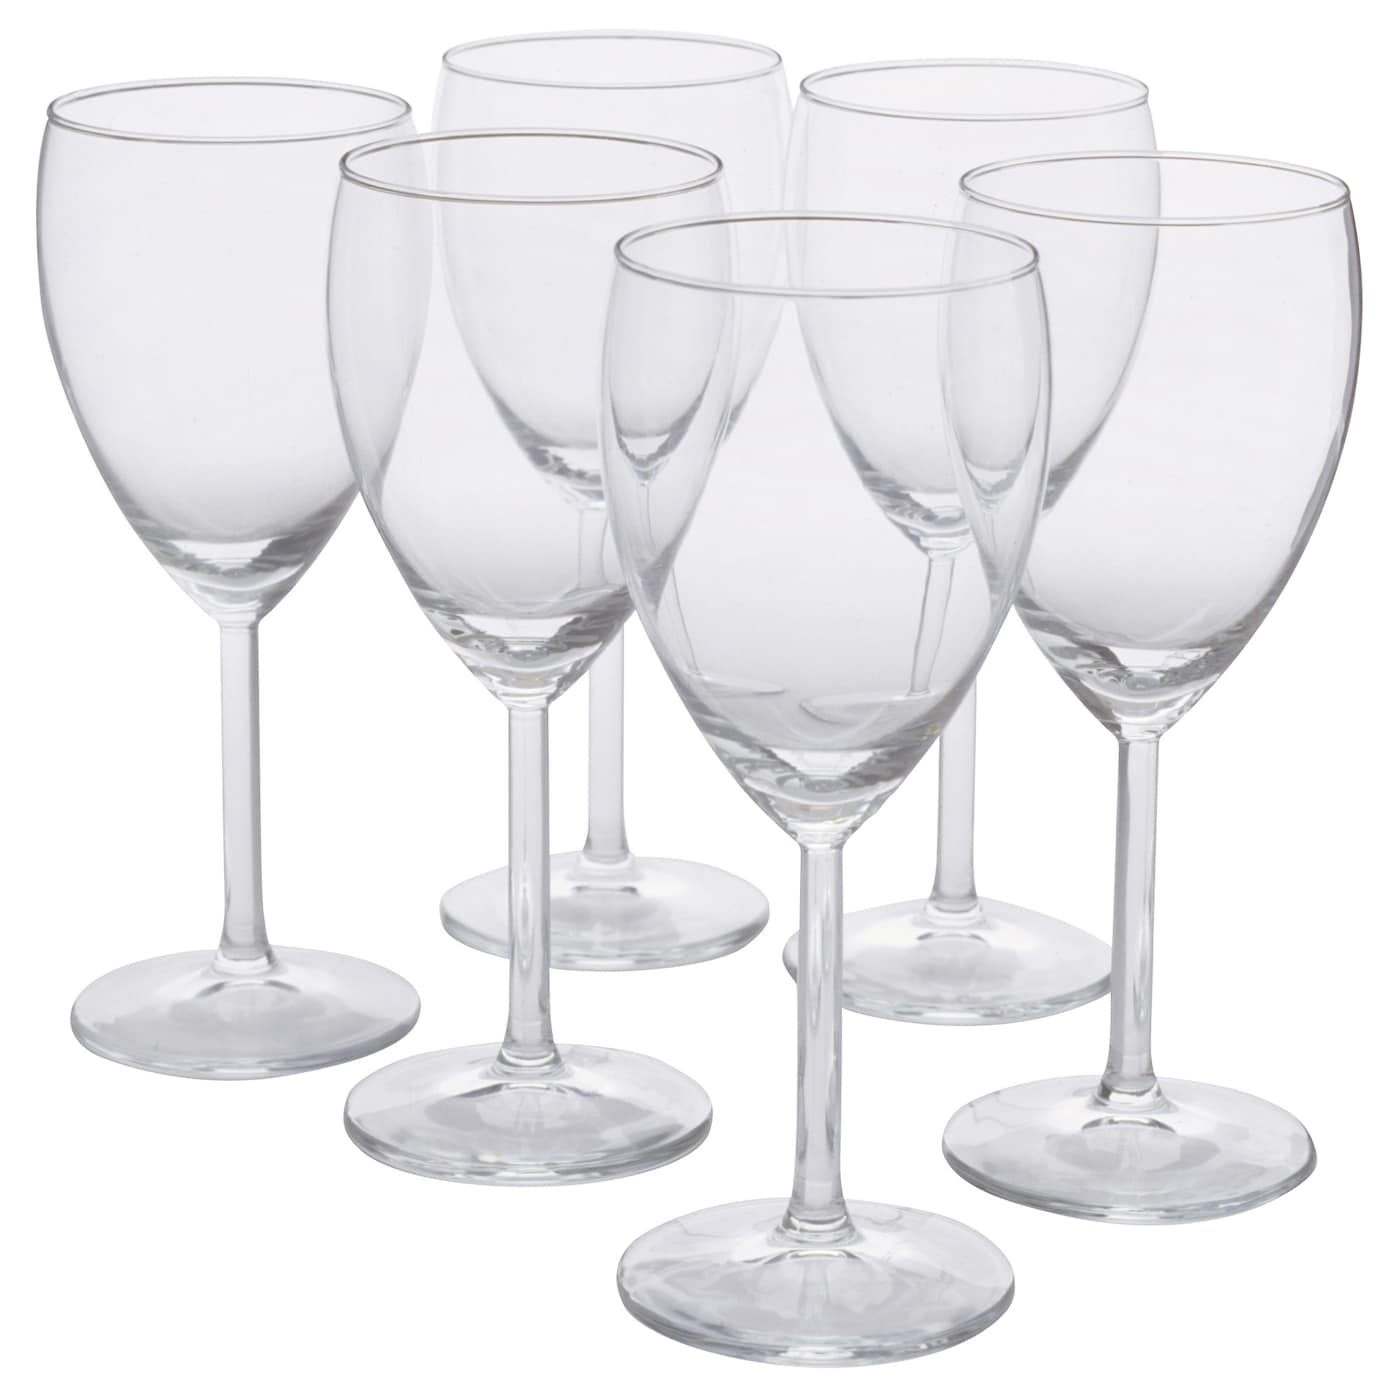 wine glasses champagne glasses ikea. Black Bedroom Furniture Sets. Home Design Ideas